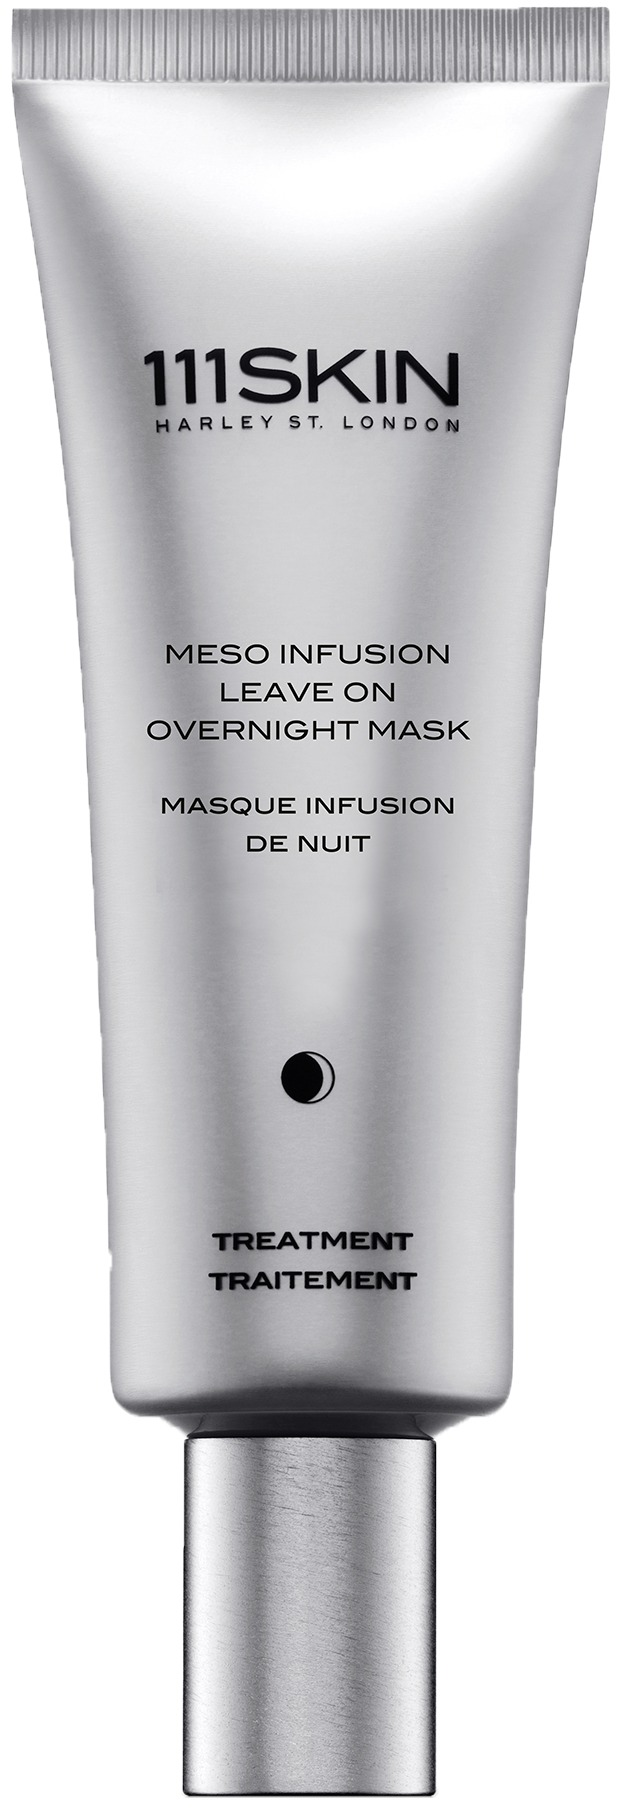 111SKIN Meso Infusion Leave On Overnight Mask